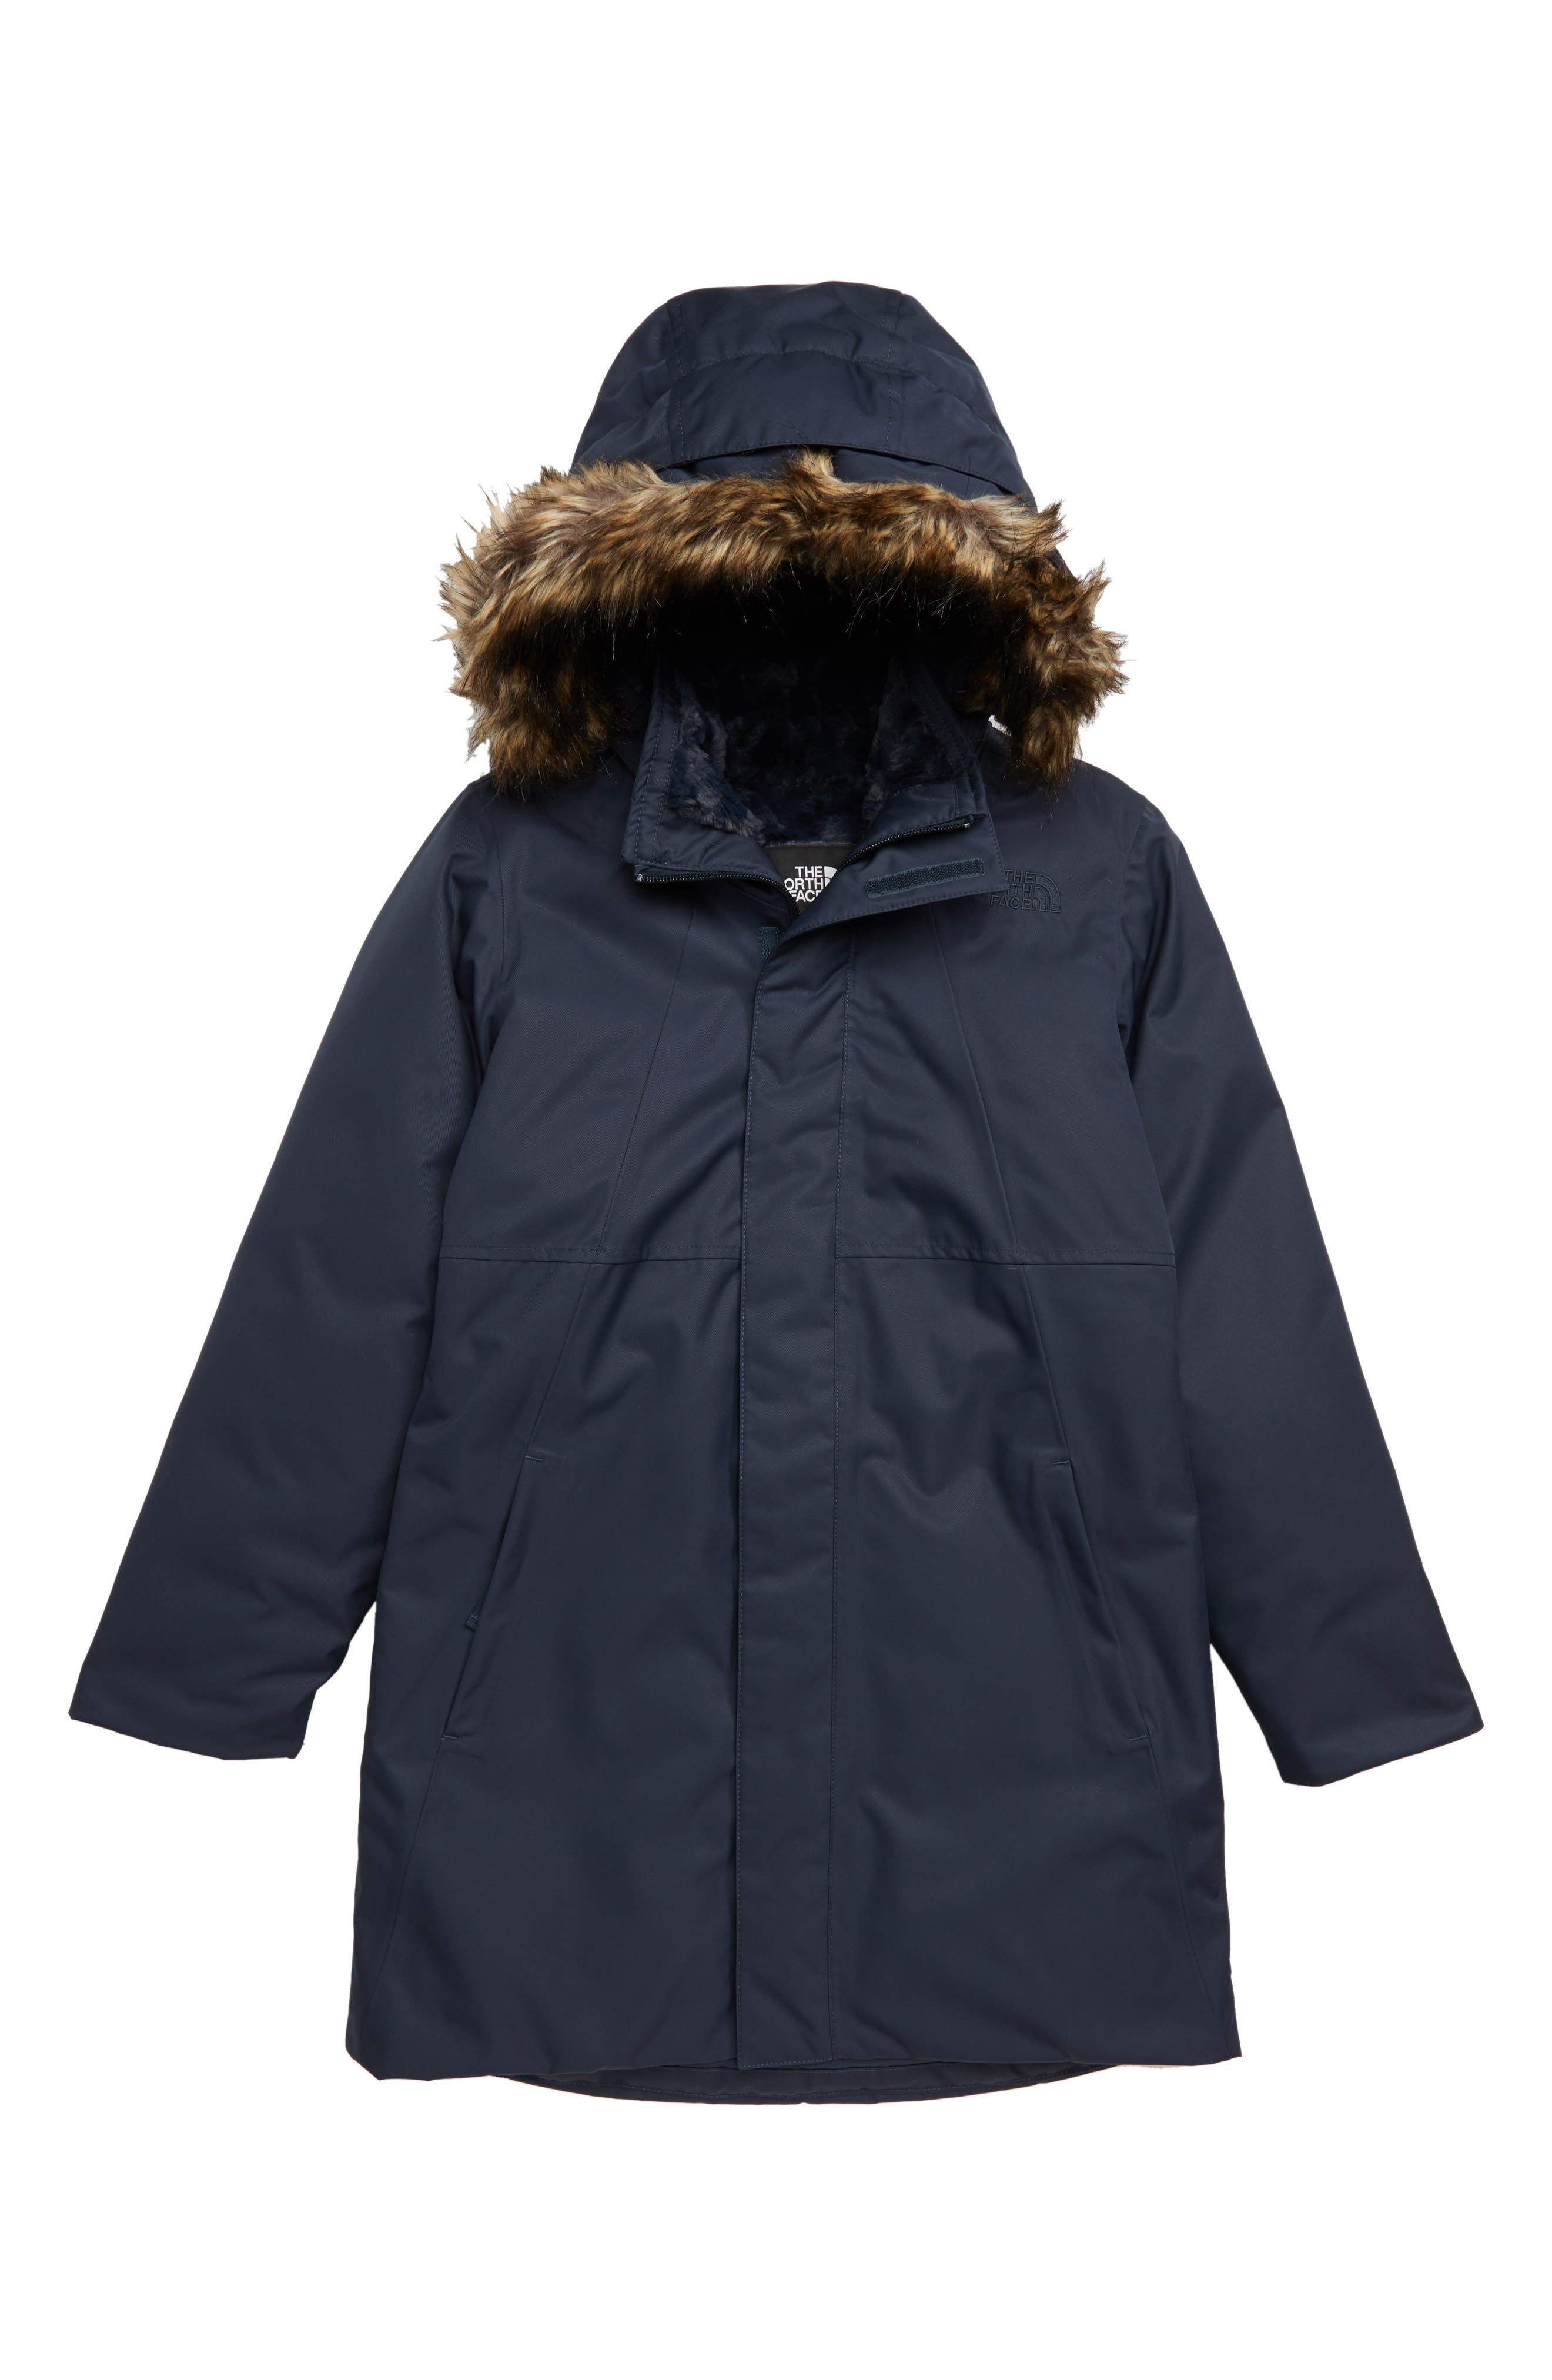 THE NORTH FACE, Arctic Swirl Waterproof 550-Fill-Power Down Parka, Main thumbnail 1, color, URBAN NAVY